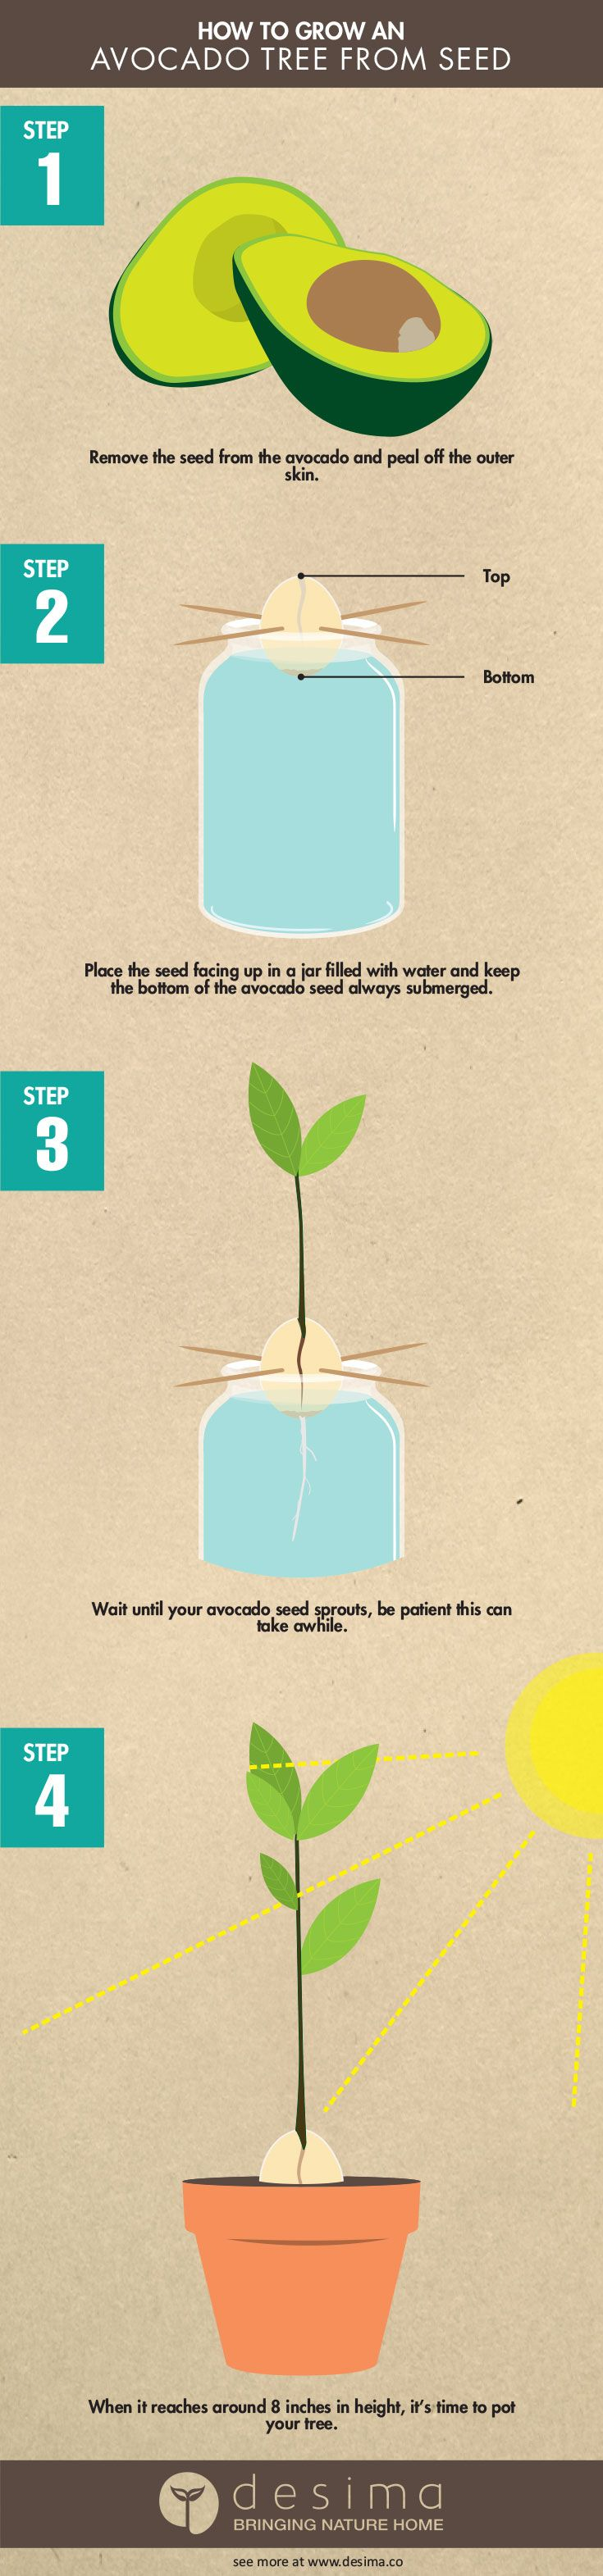 51 best desima infographics images on pinterest for Grow your own avocado tree from seed